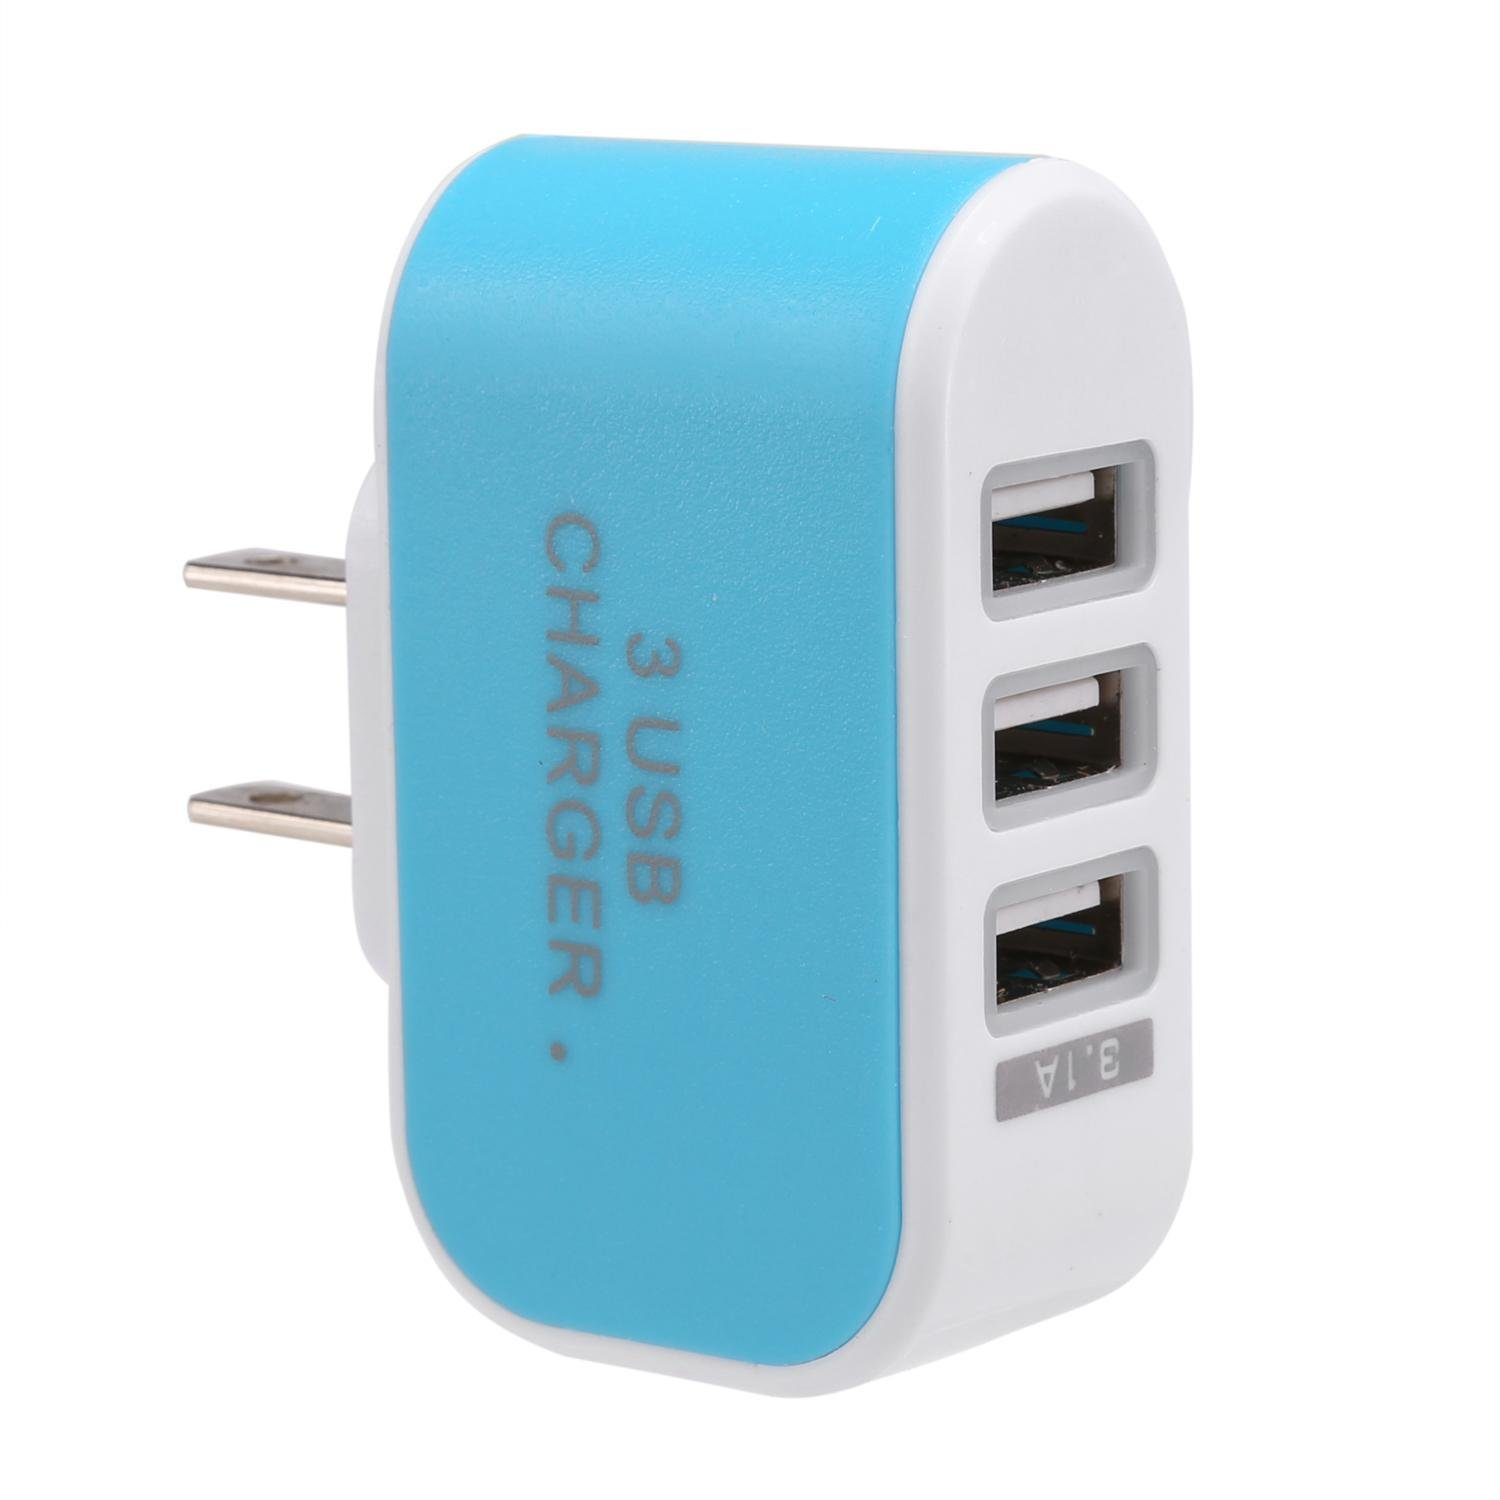 Yirind USB Wall Charger,3.1A 3-Port USB Cube Power Adapter for Phone US Plug Wall Chargers,Black